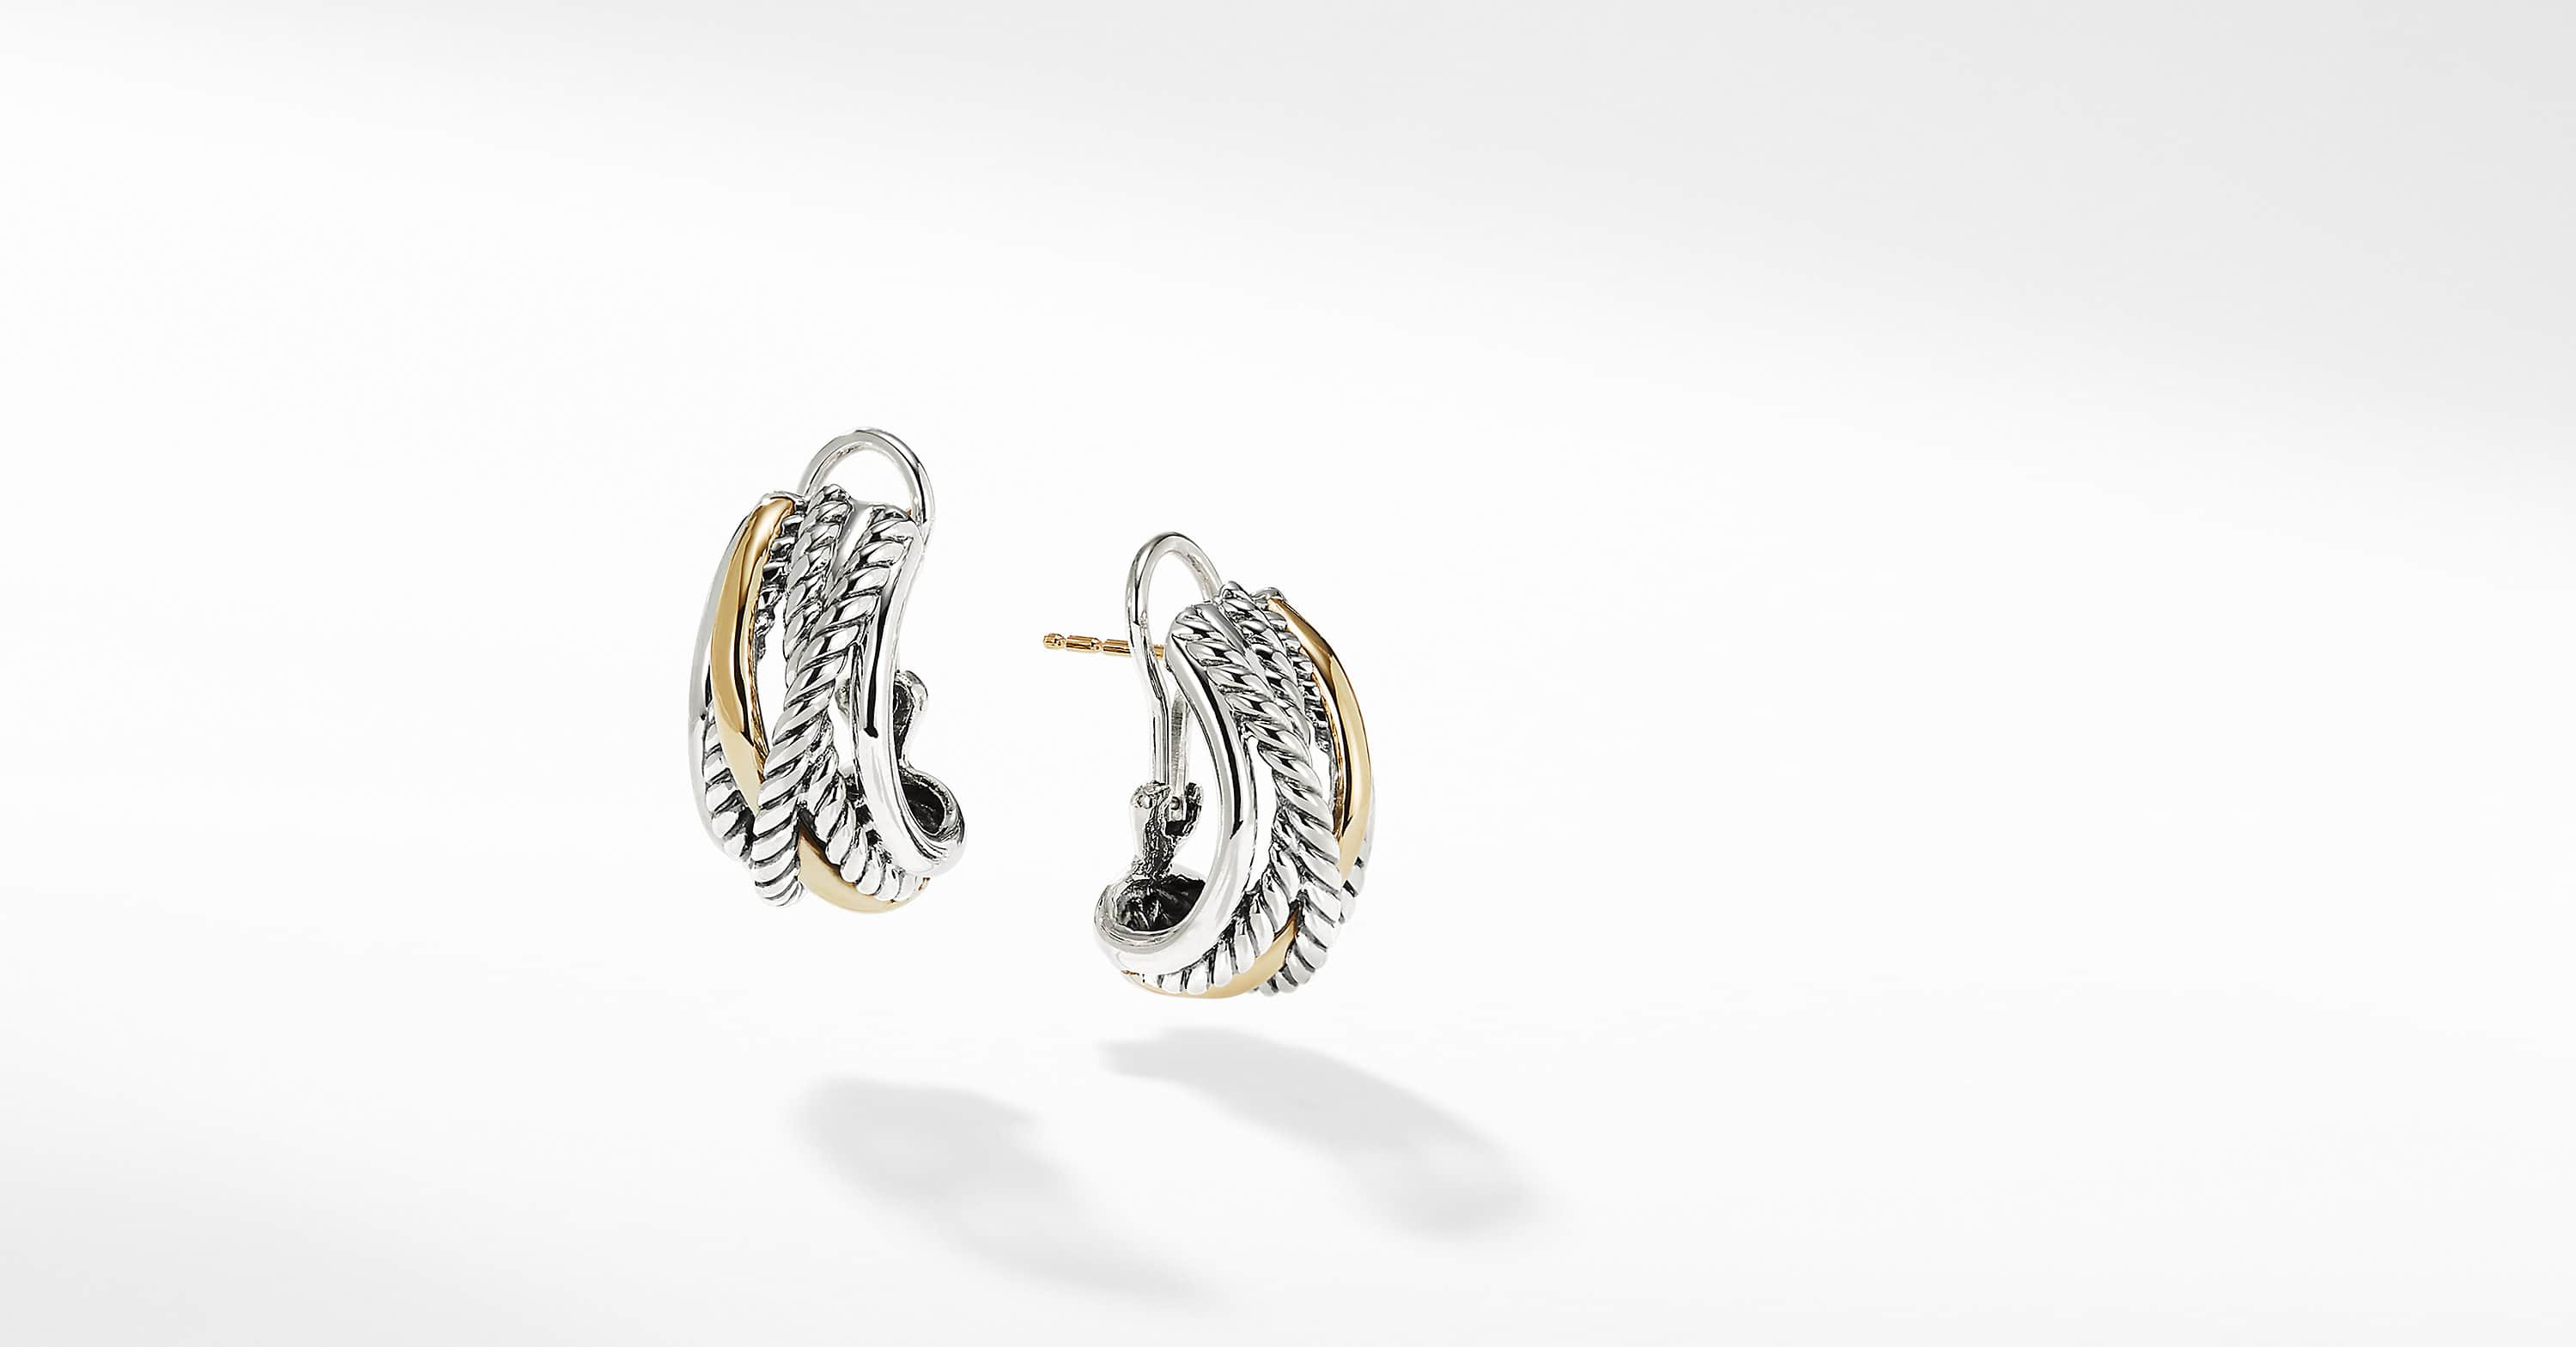 The Crossover Collection Earrings with 14K Yellow Gold